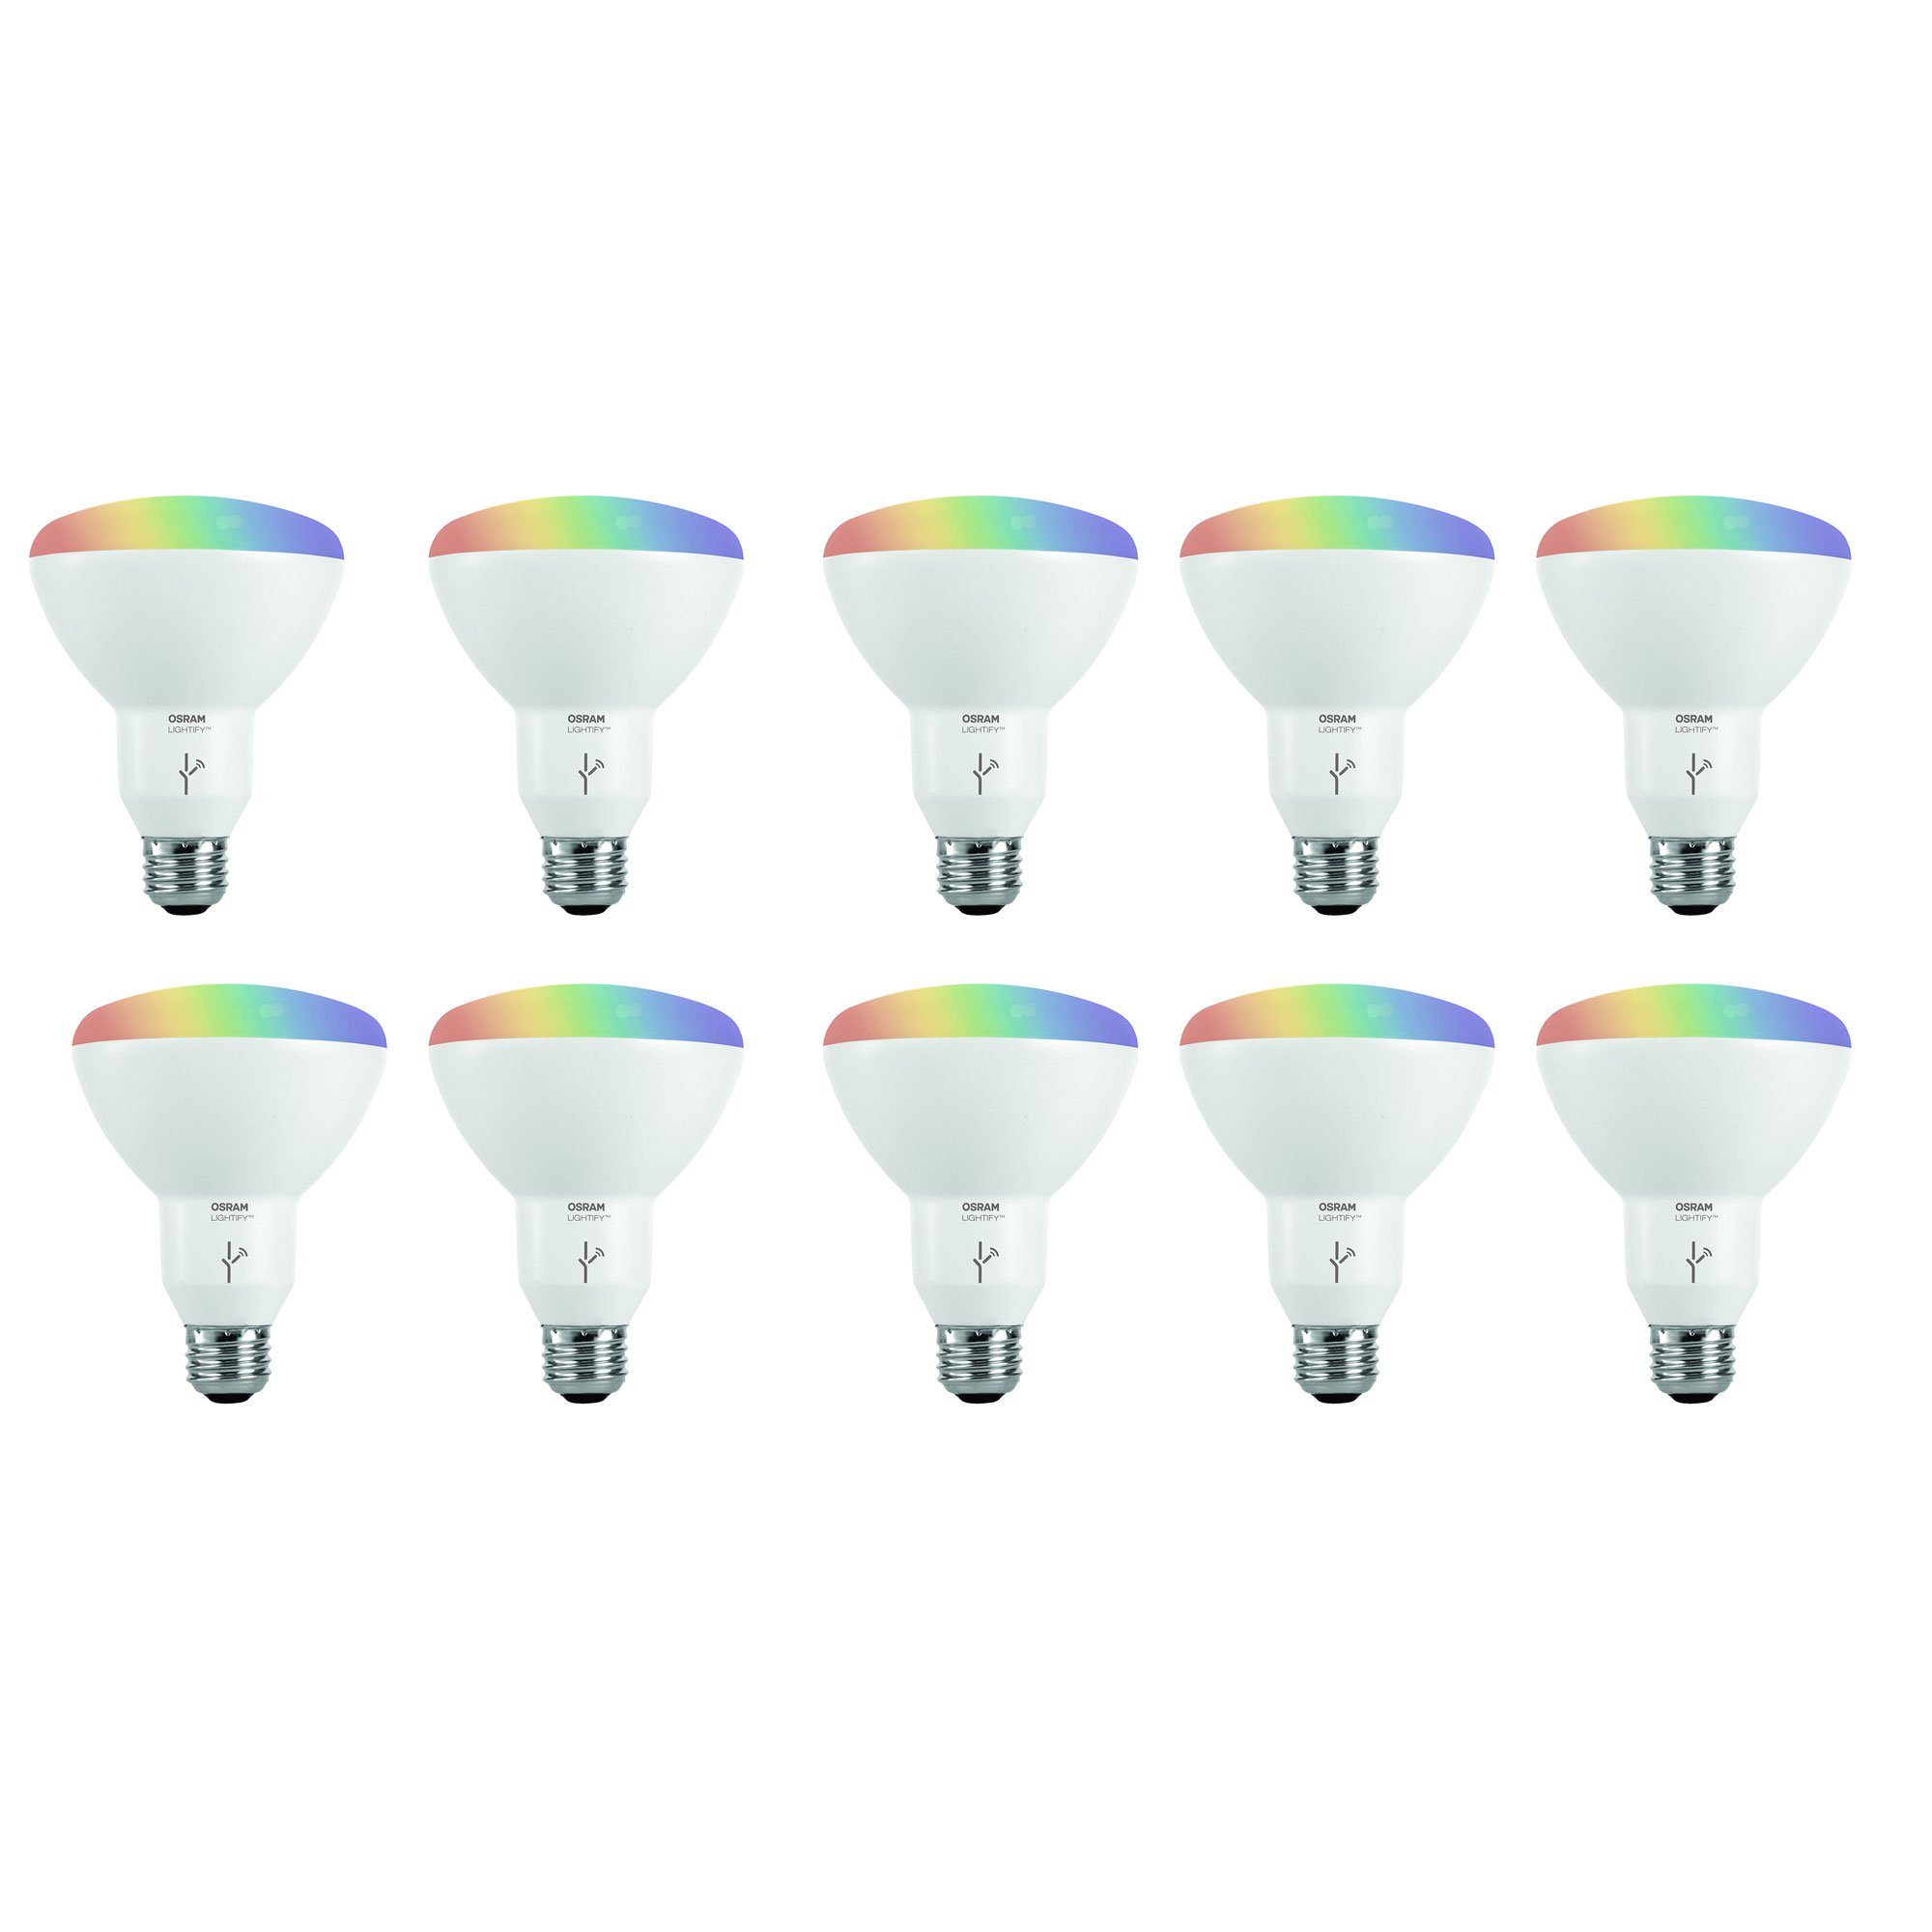 Sylvania Osram Lightify Smart Home 65W BR30 White/Color LED Light Bulb (10 Pack)